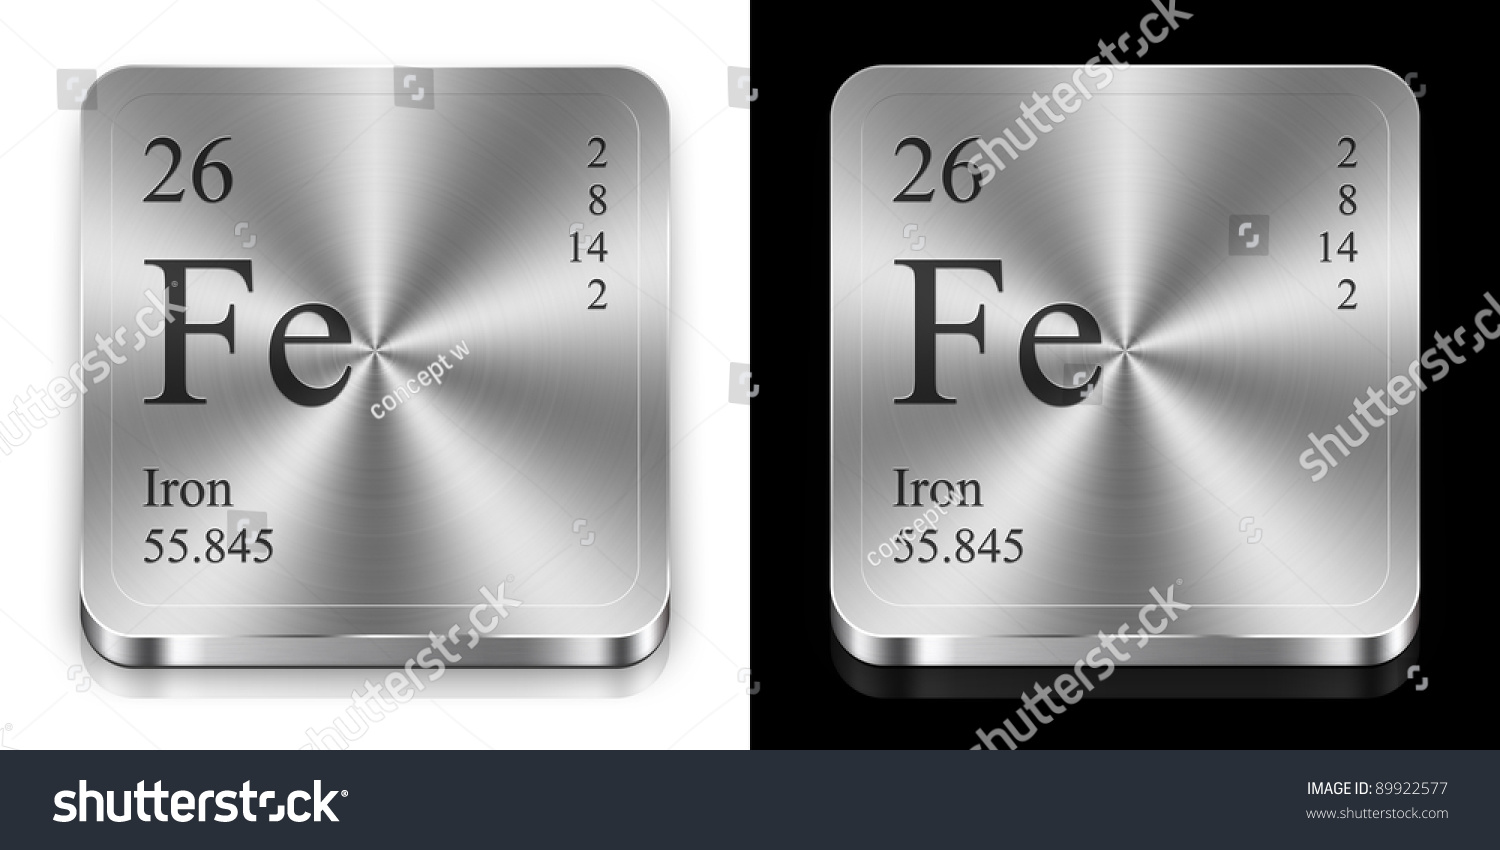 Iron element periodic table two metal stock illustration 89922577 iron element of the periodic table two metal web buttons gamestrikefo Choice Image